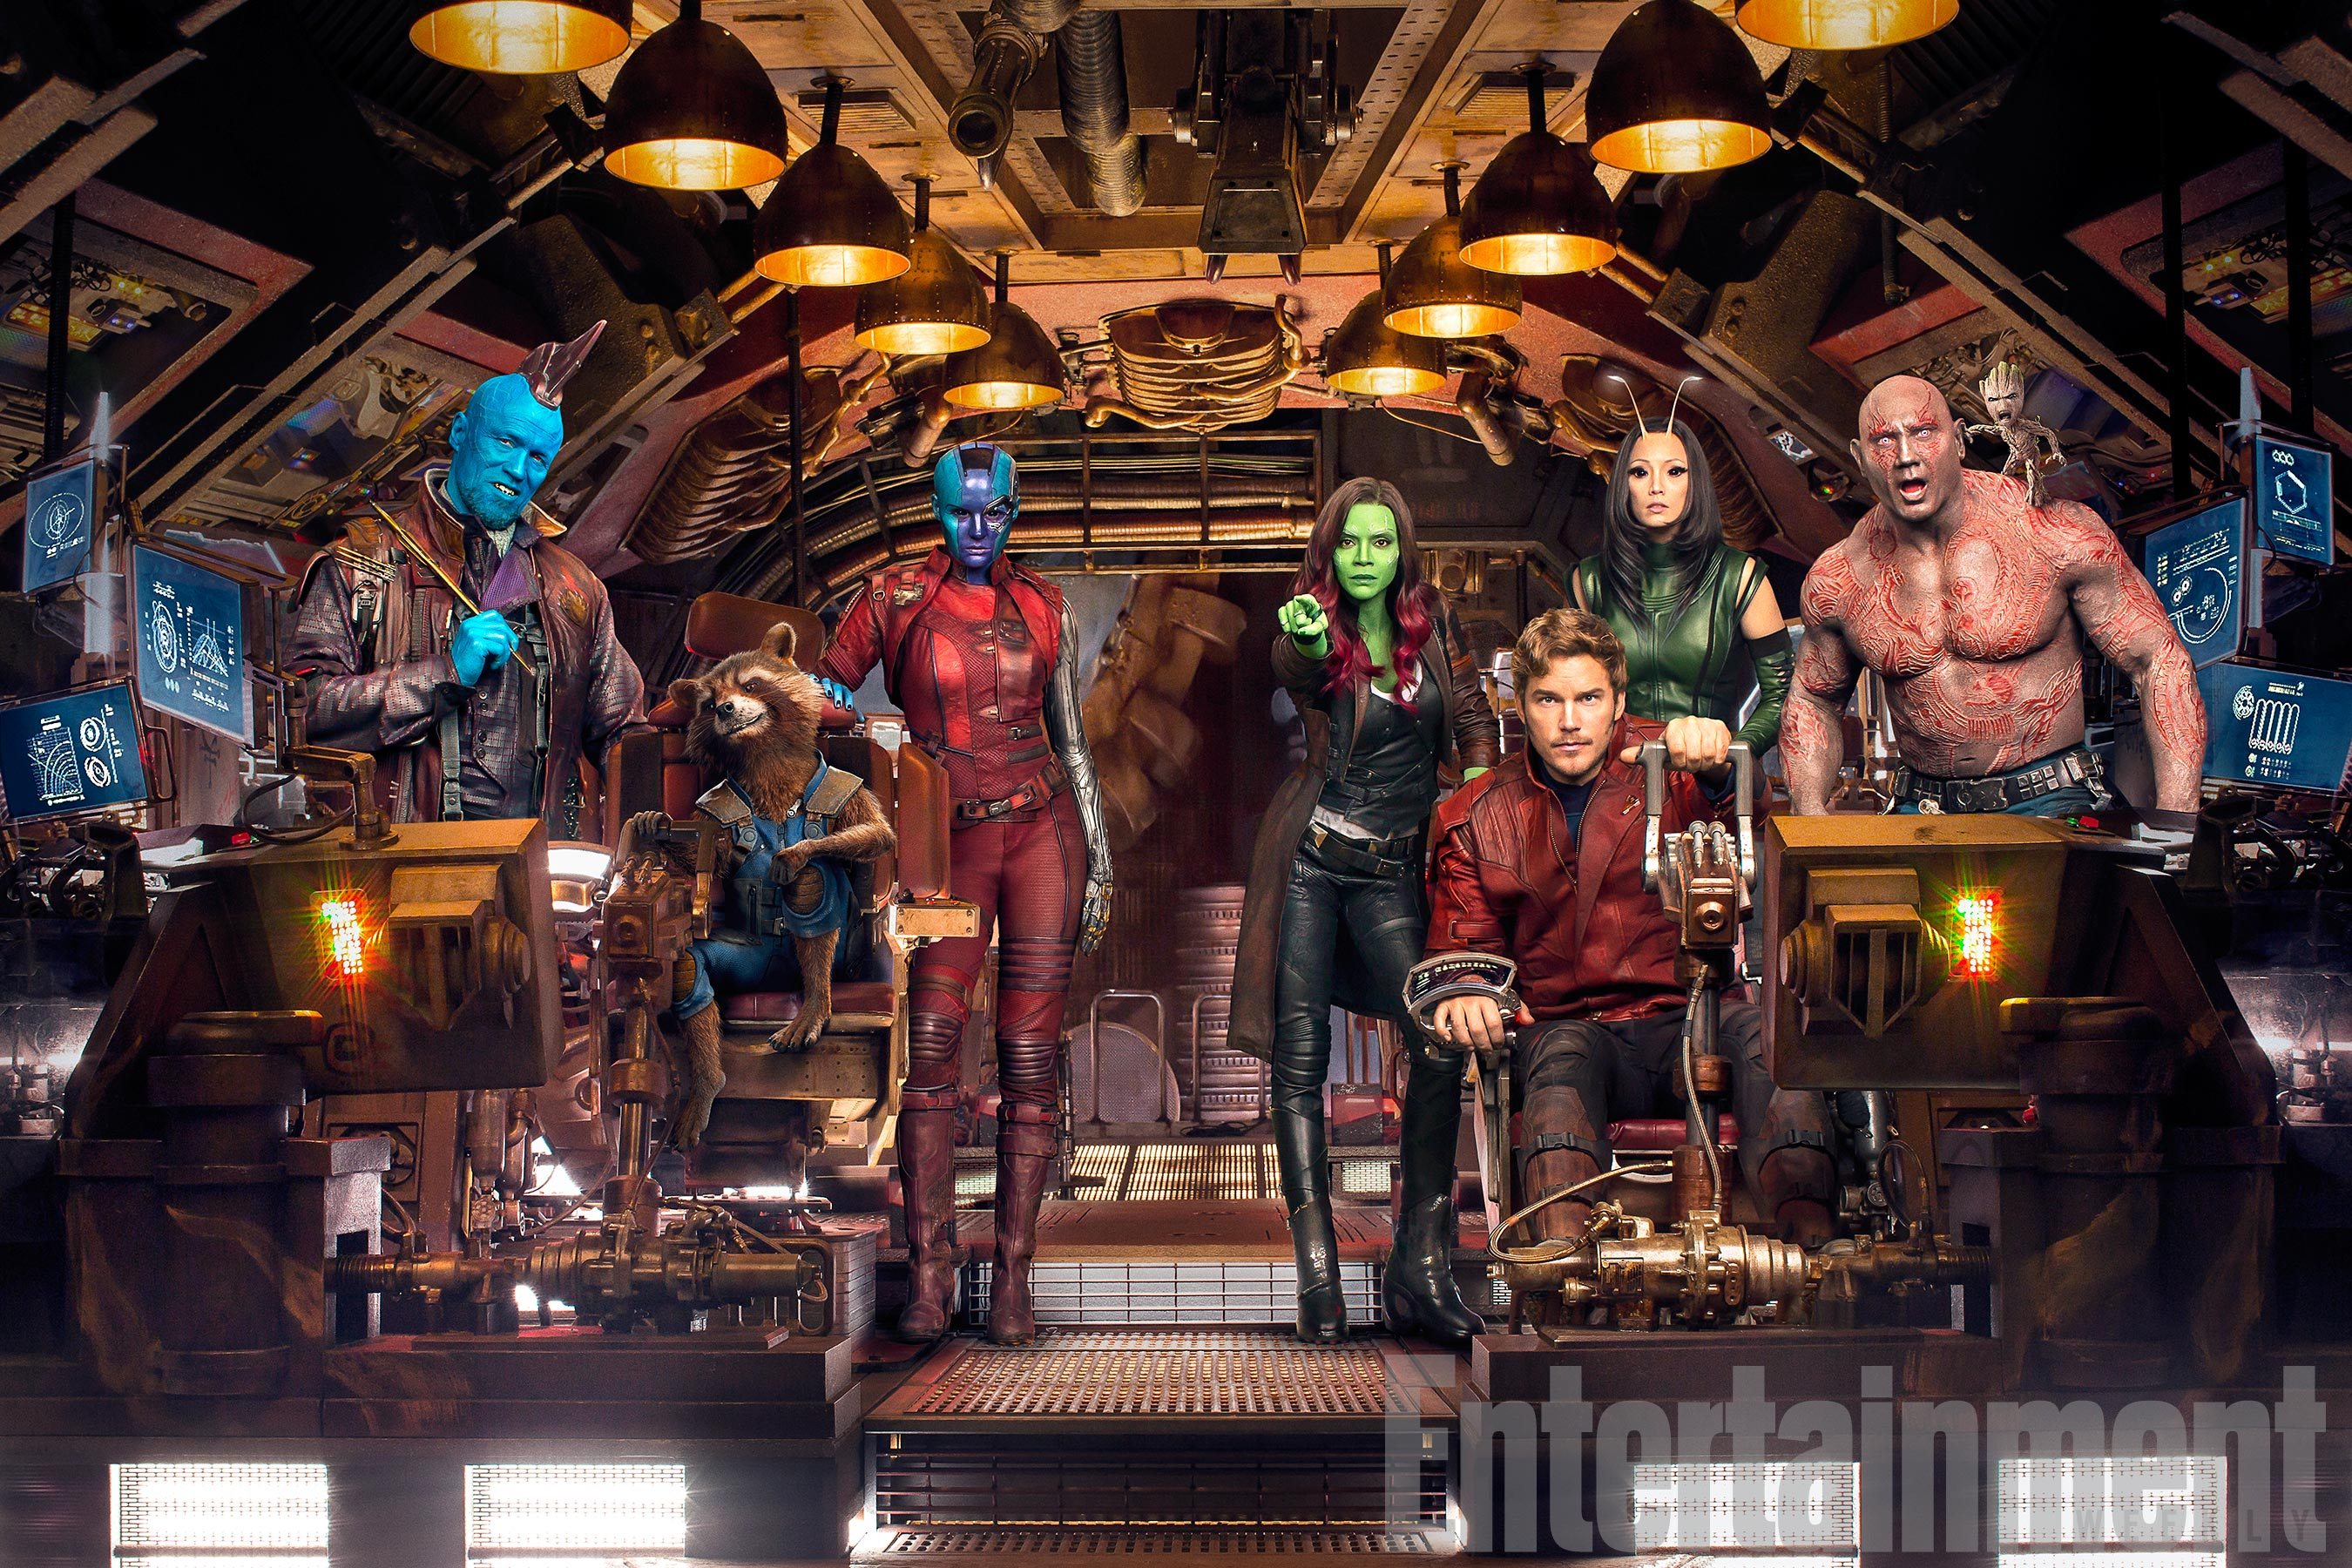 Gorgeous New Stills For Guardians Of The Galaxy Vol. 2 Feature Gamora, Rocket And Little Baby Groot